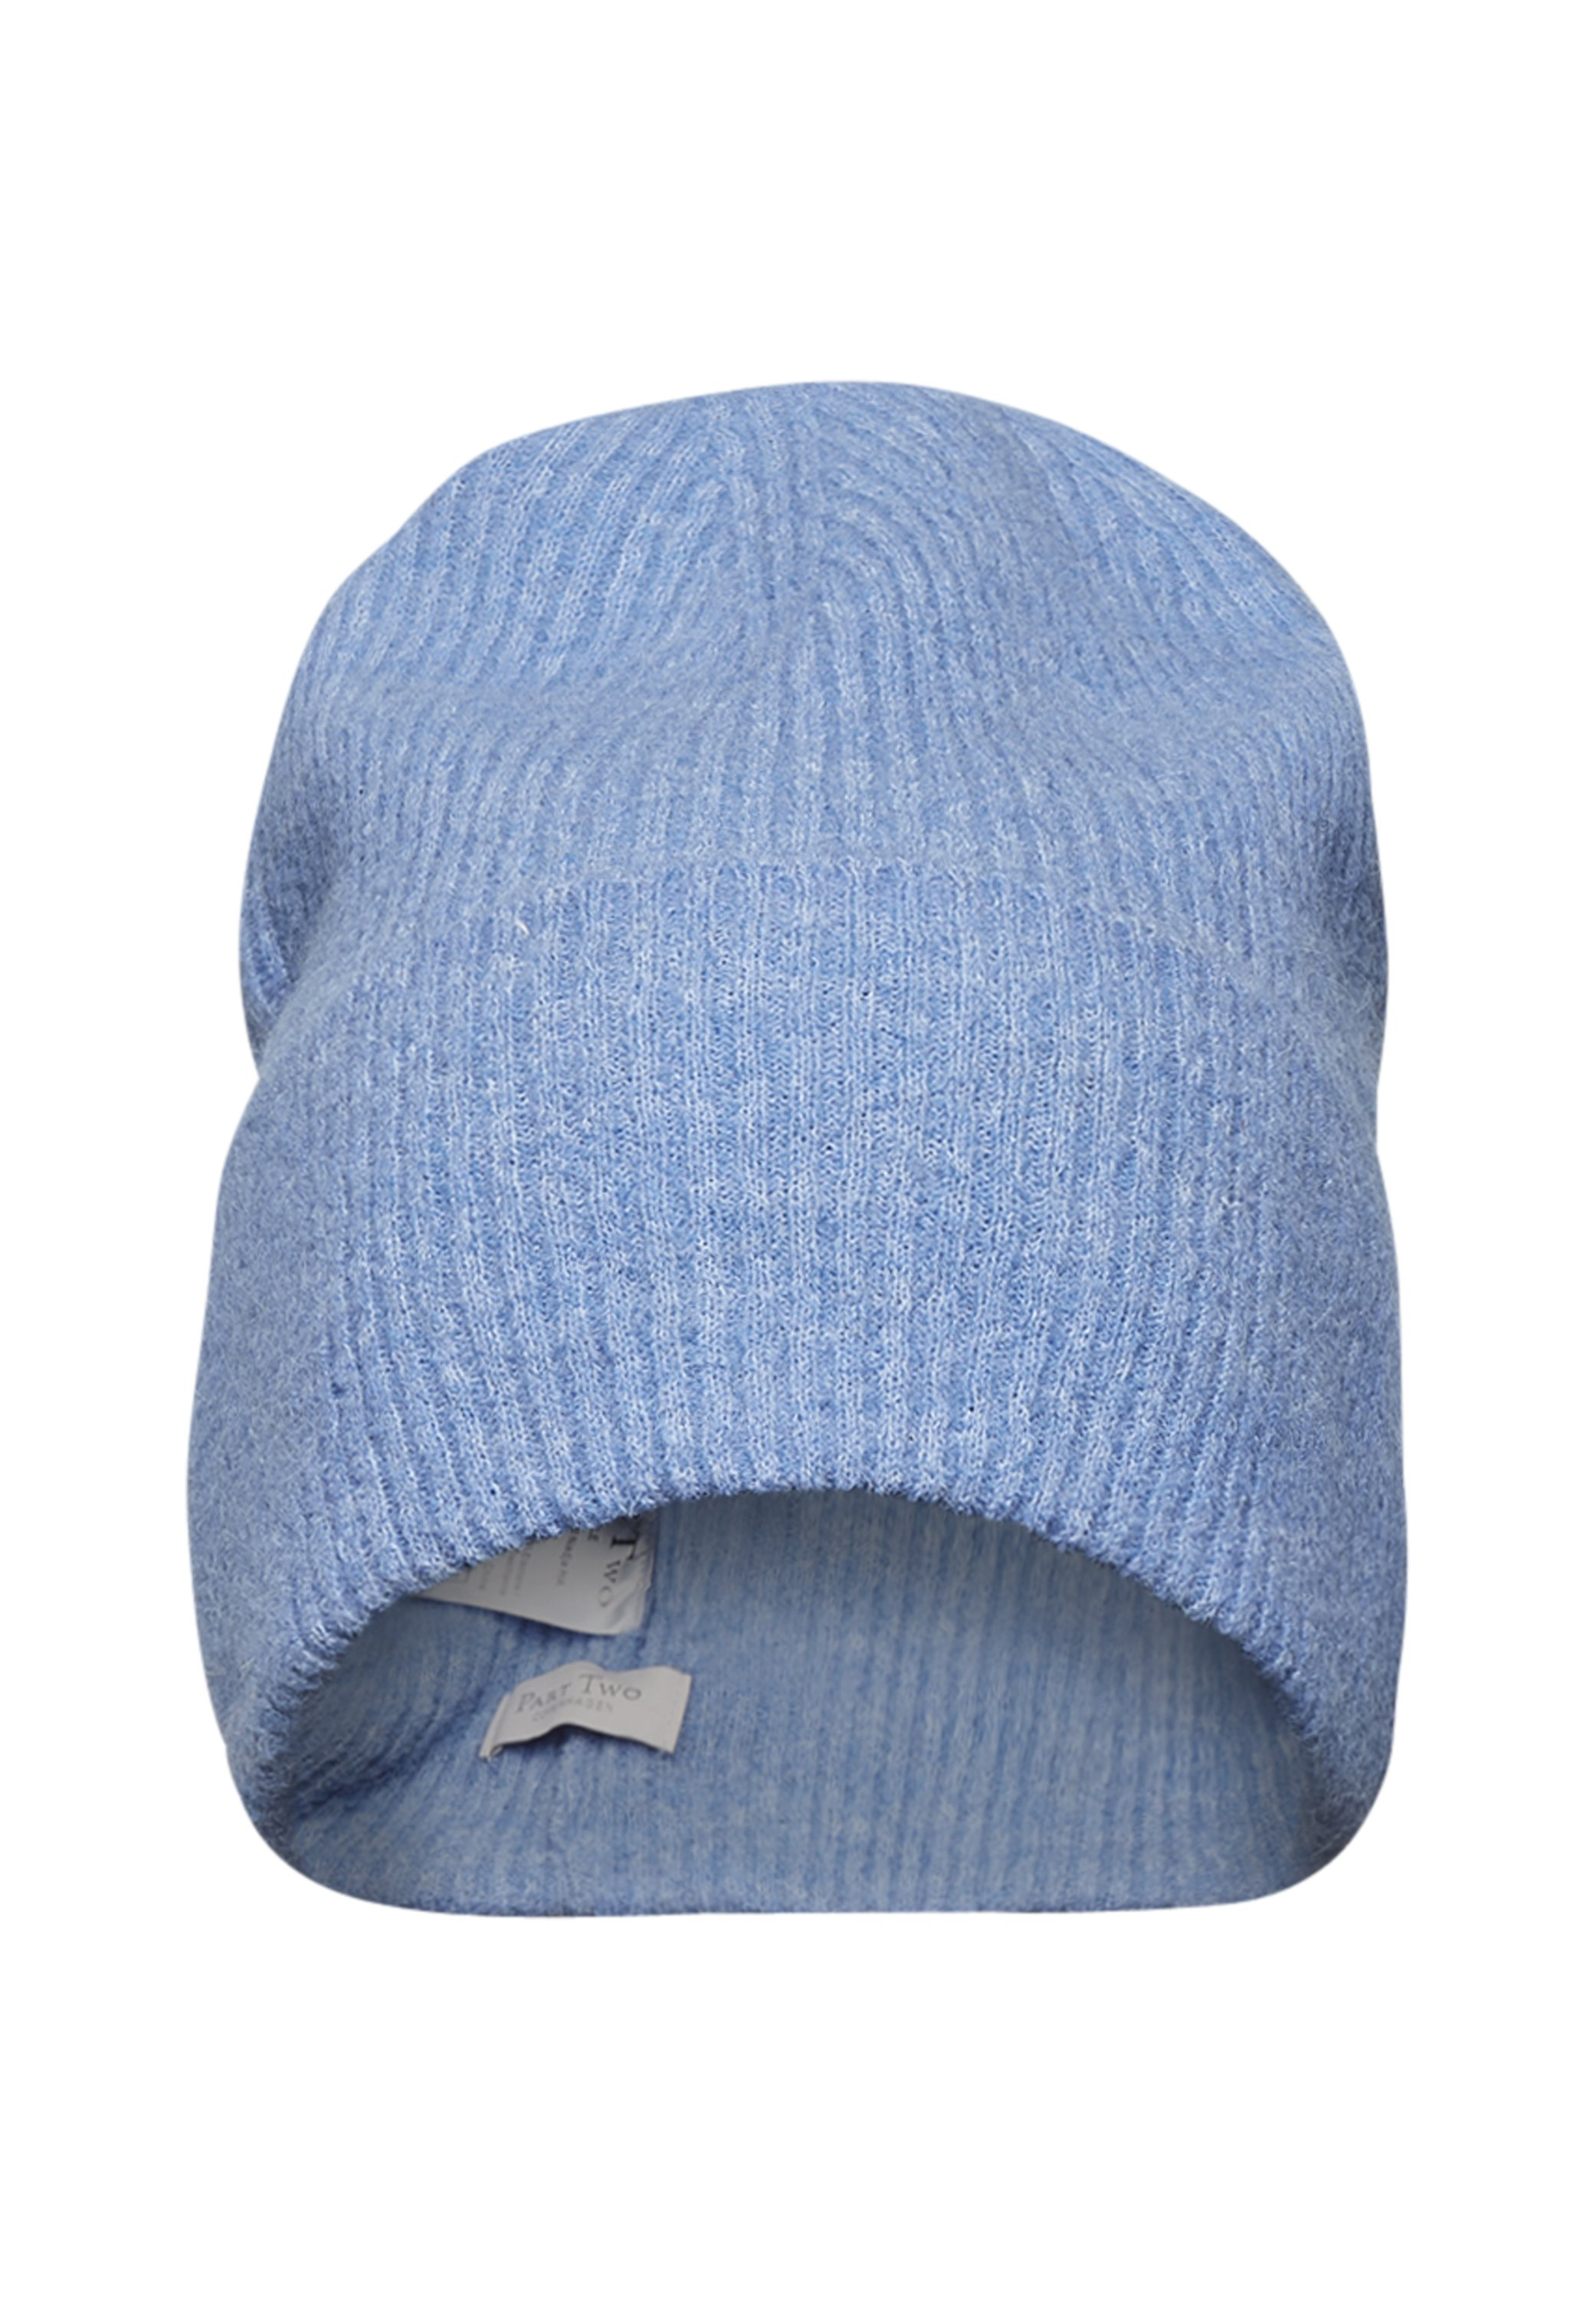 Best Seller New Lower Prices Accessories Part Two NADJAPW HA Beanie dusky blue 6fZx8otqI VCVh0Bceb